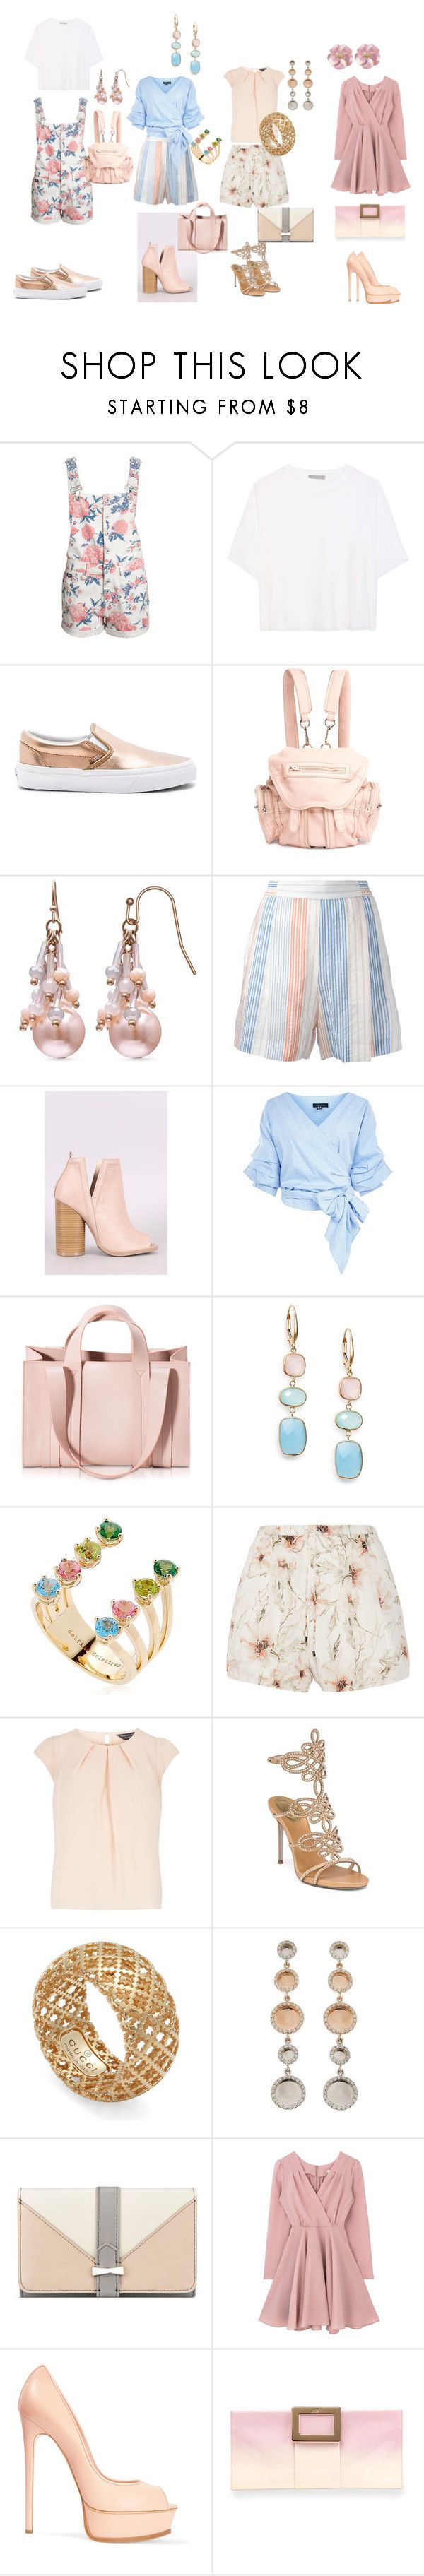 """""""Spring Fashion 2017 11"""" by anna-mar ❤ liked on Polyvore featuring Vince, Vans, Alexander Wang, STELLA McCARTNEY, Qupid, Corto Moltedo, Saks Fifth Avenue, Delfina Delettrez, Haute Hippie and Dorothy Perkins"""